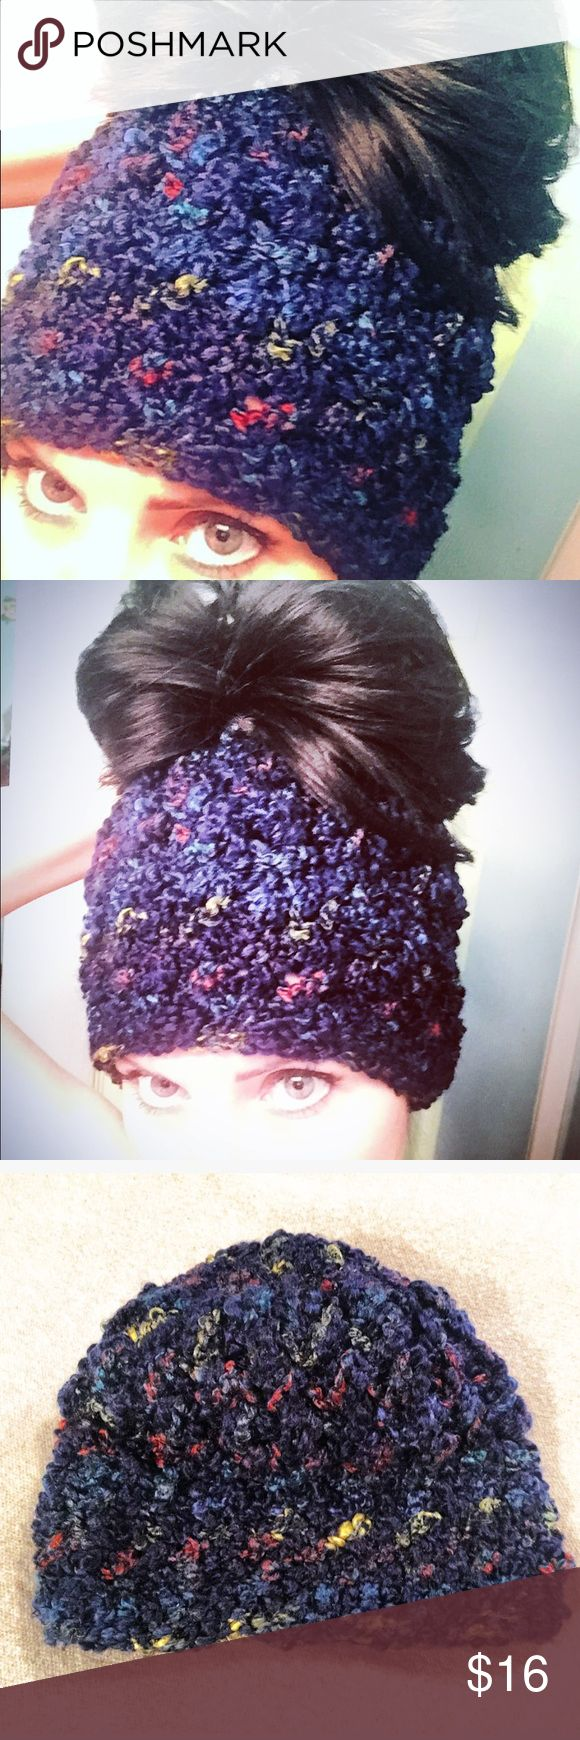 Bun Beanie/Ponytail Bogan Crochet with Puff Stitch Handmade Crochet Bun Beanie/Ponytail Bogan -->Crochet with Puff Stitch-->trendy new style for winter wear! Adult women's size! Also available in different colors and sizes! Accessories Hats